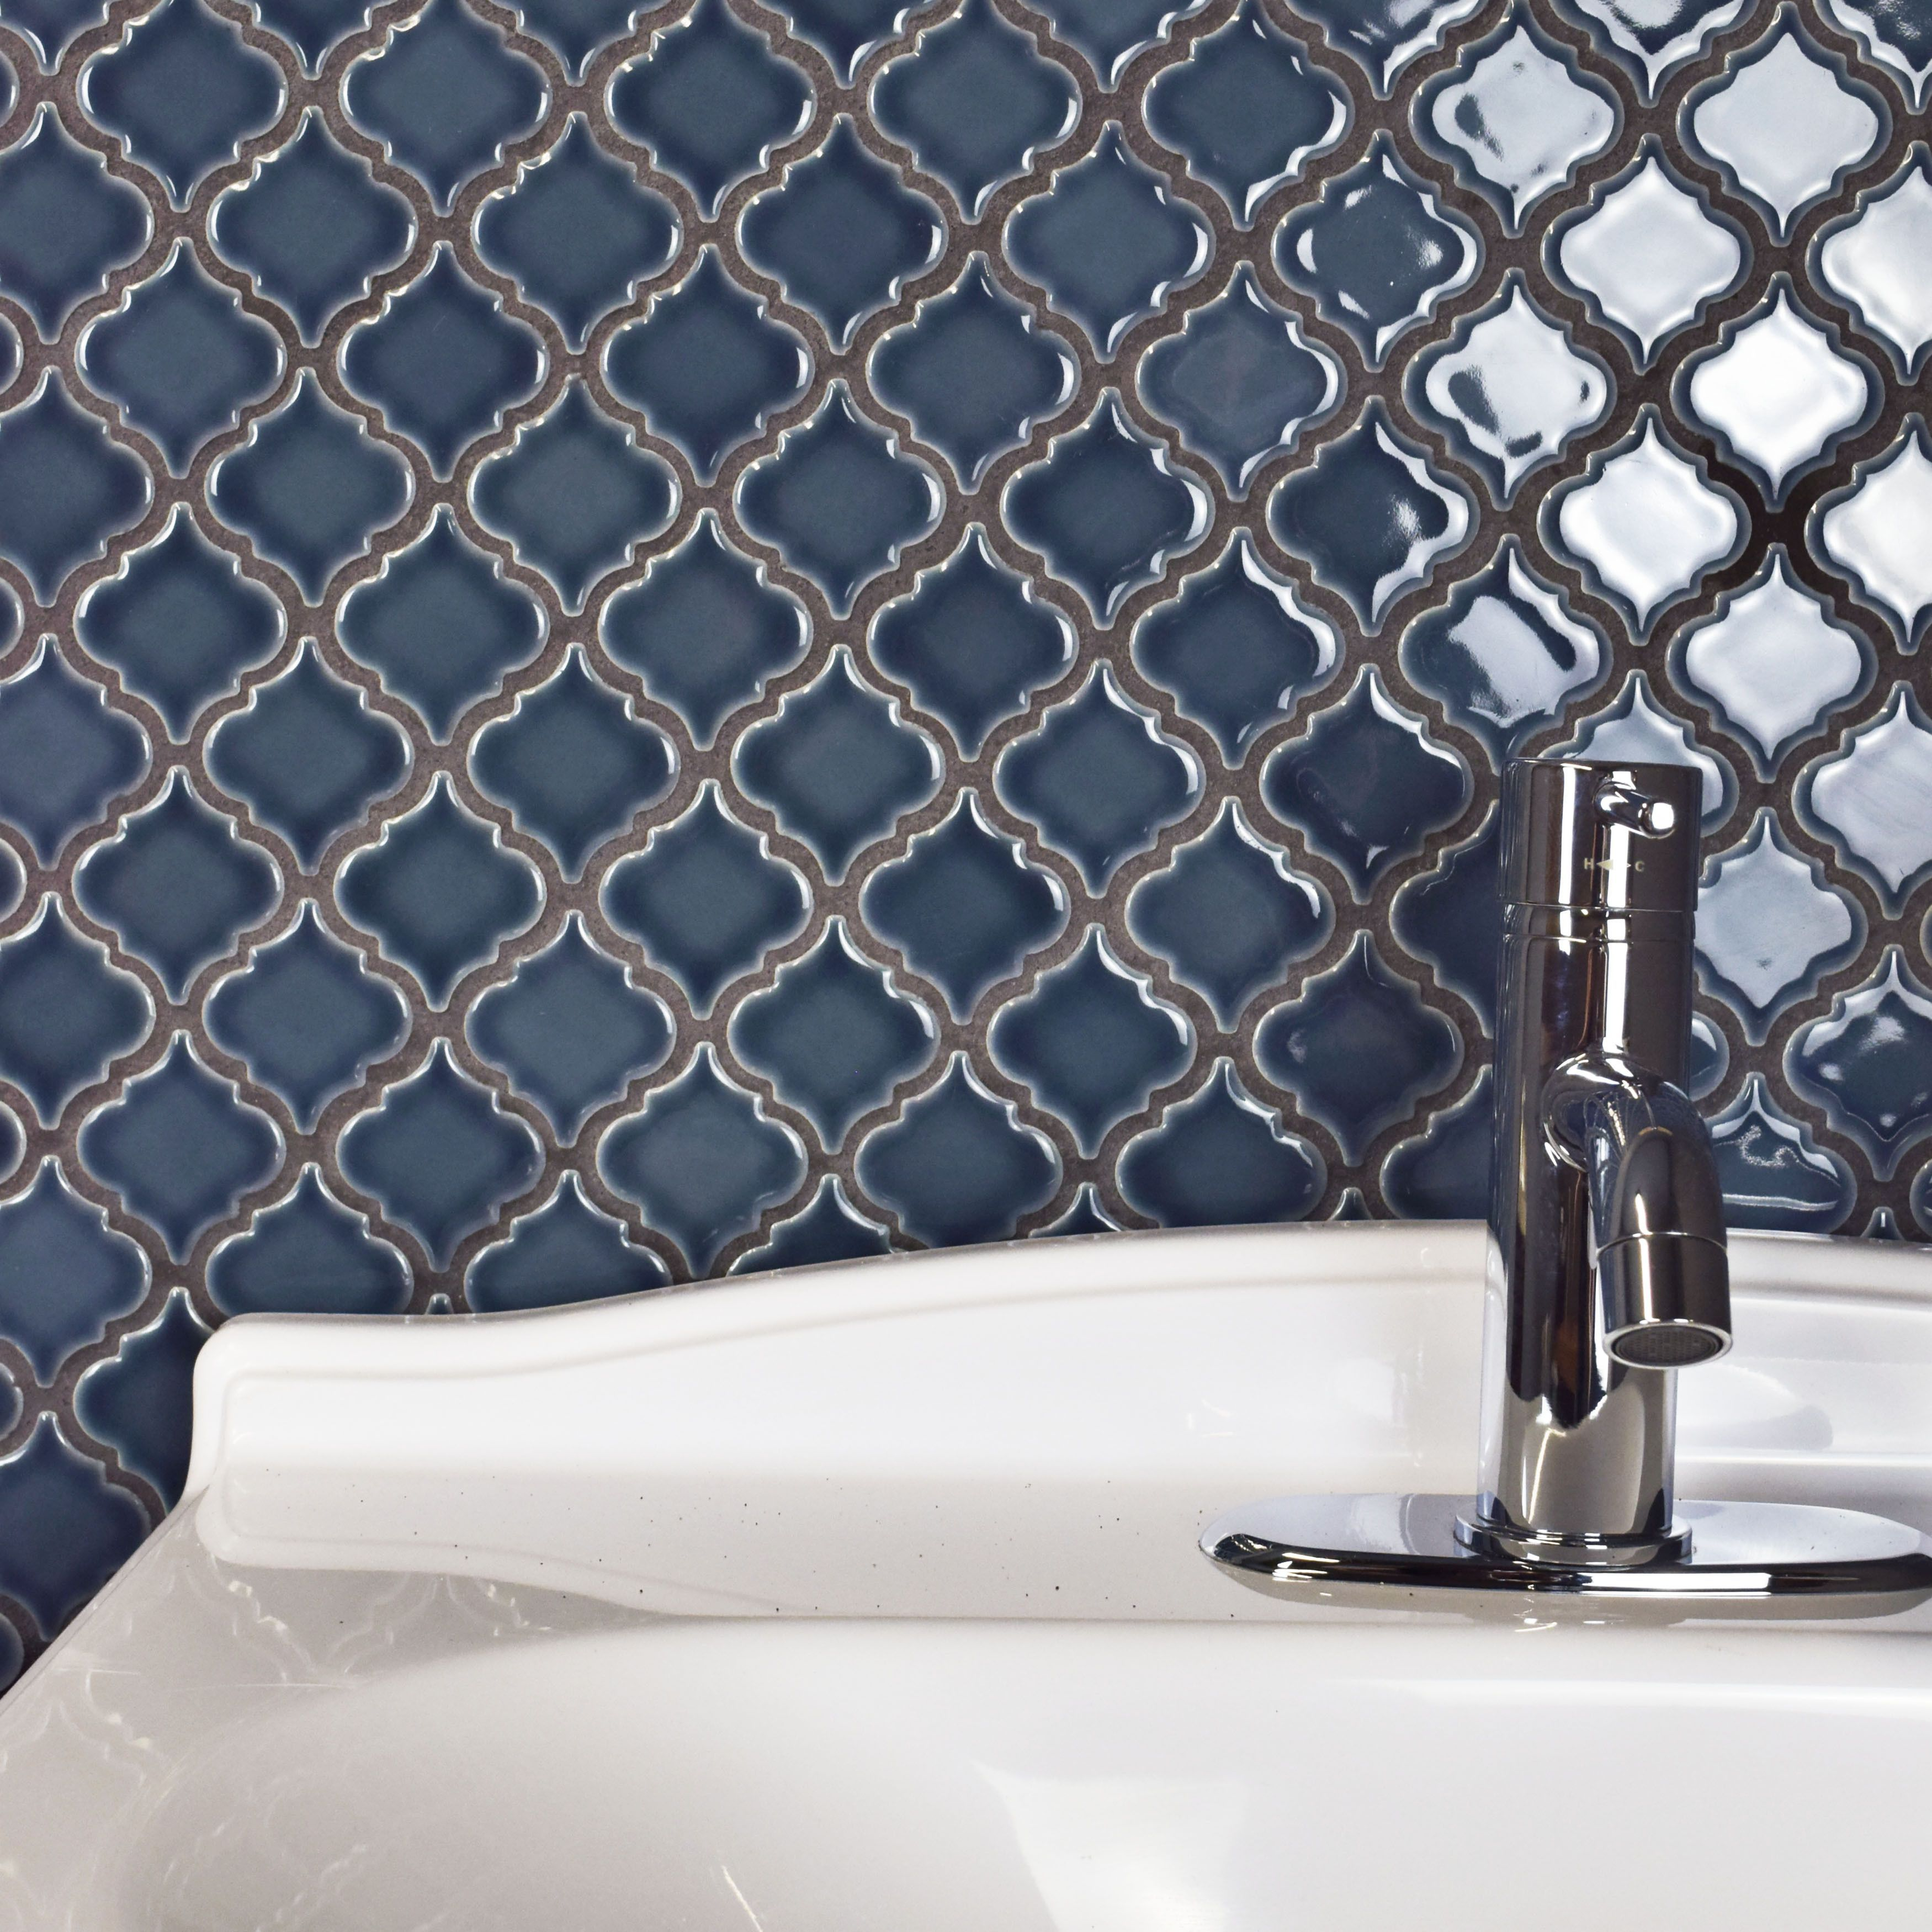 Backsplash Tiles: Protect your kitchen and bathroom walls with ...